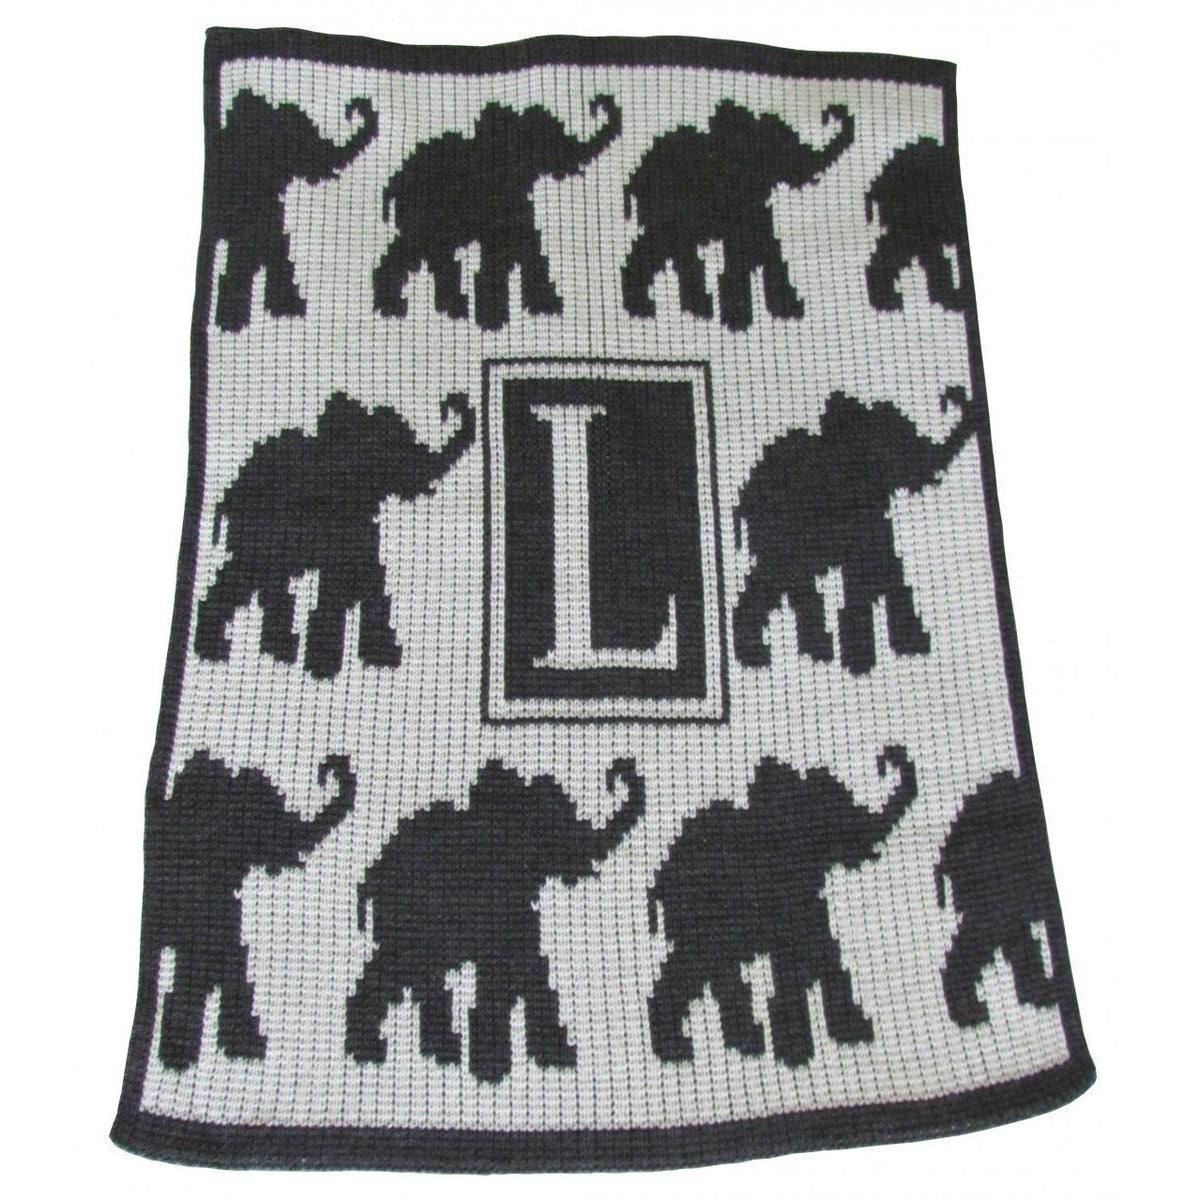 Walking Elephants Personalized Blanket - Stroller, Crib, Throw and XL sizes-Baby Blanket-Jack and Jill Boutique